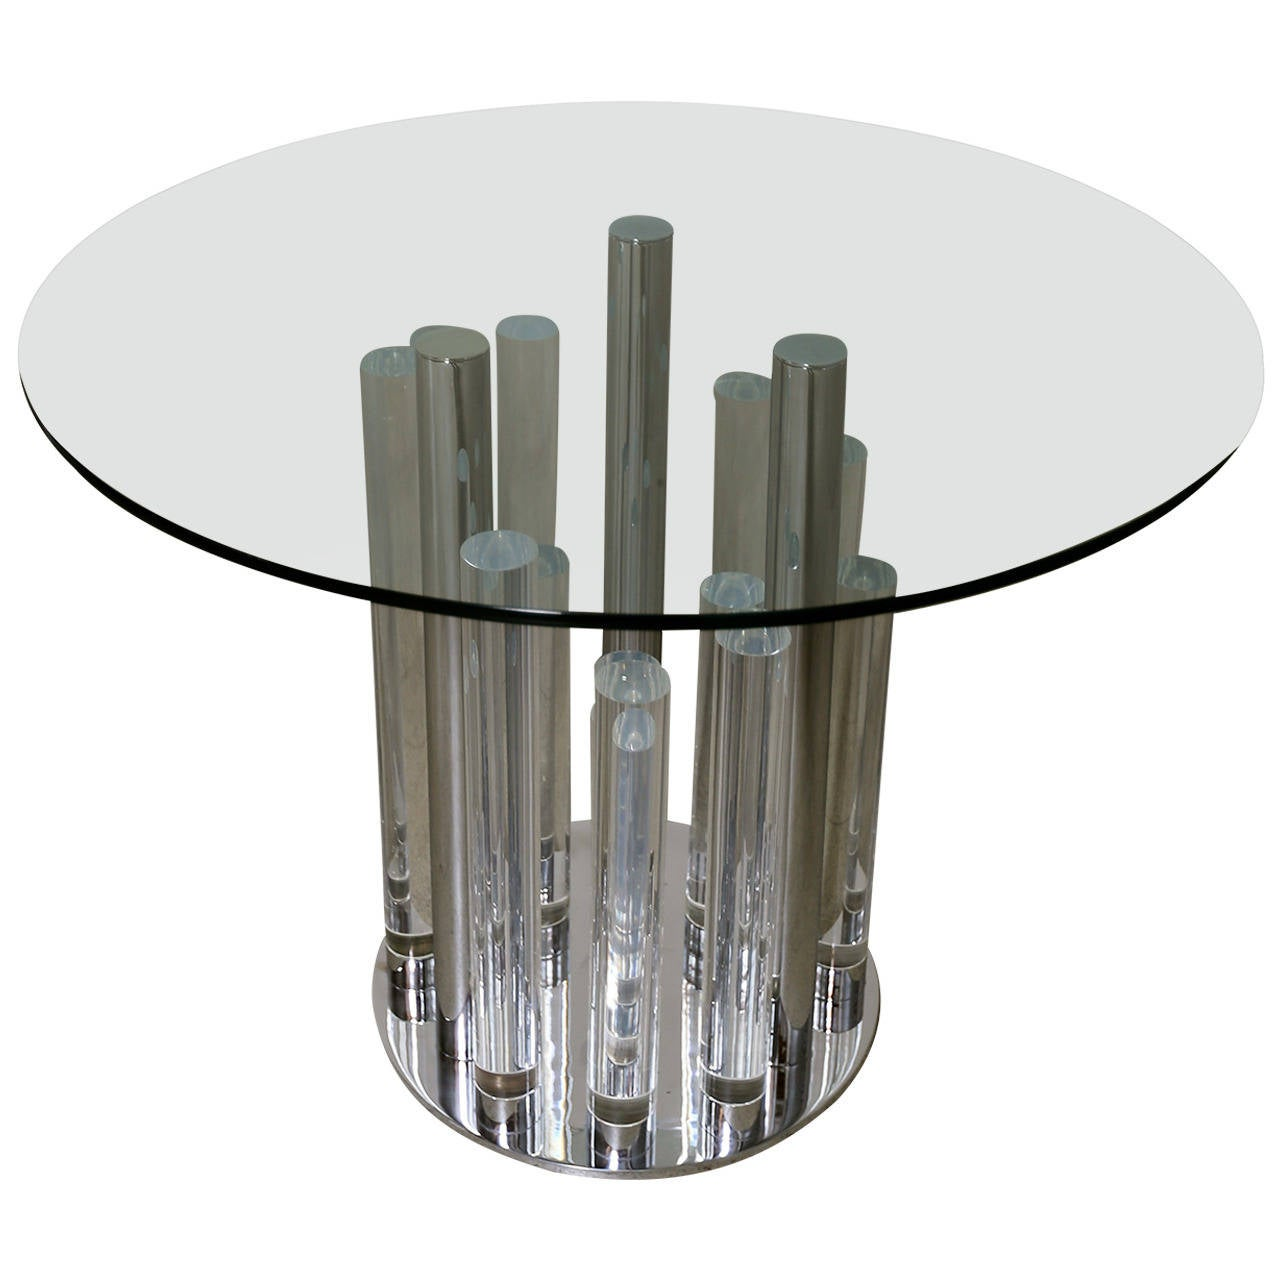 Loretta Young Lucite Dining Table by Charles Hollis Jones at 1stdibs